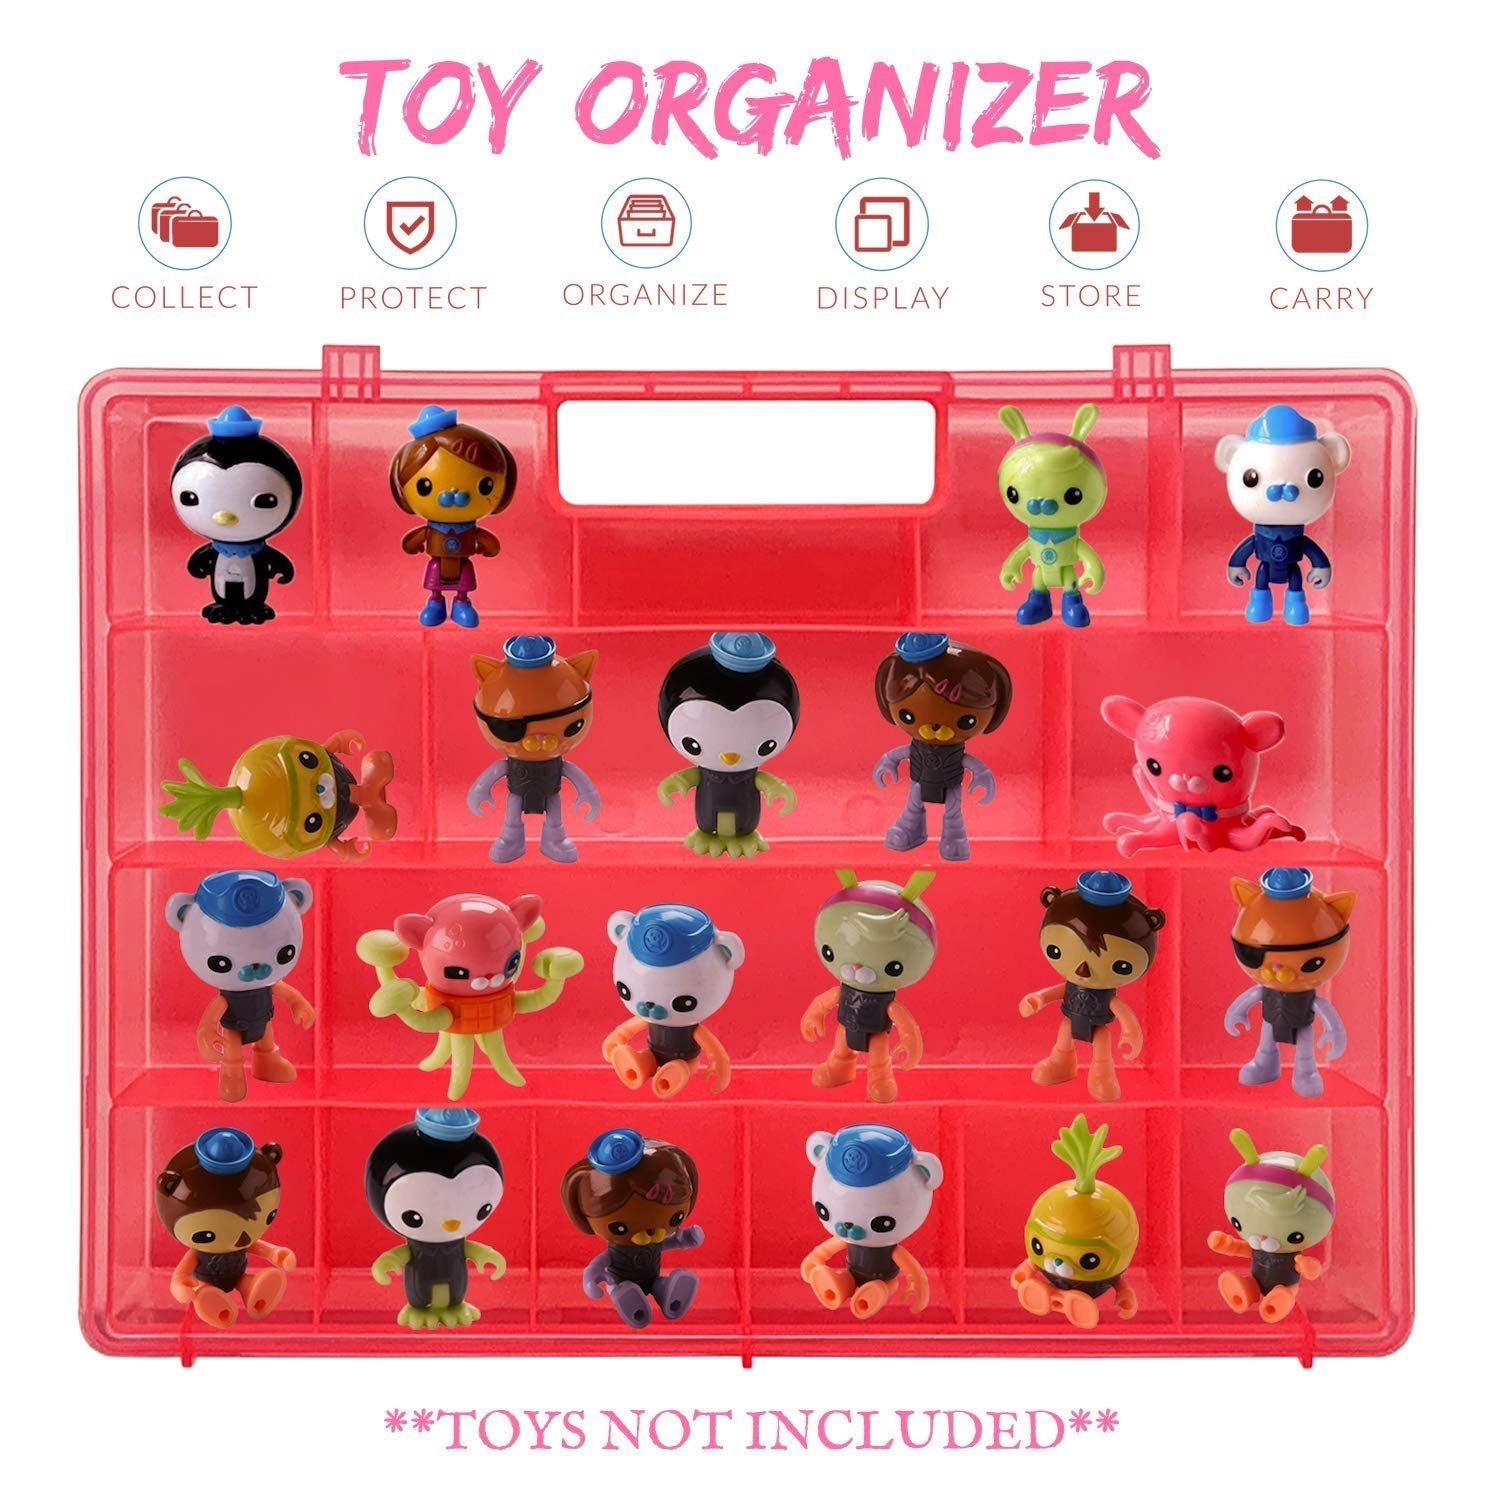 Life Made Better, Pink Box to Protect Figurines and Playset Accessories, Light-Weight Toy Carrying Case for Kids, Compatible with Octonauts, Made by LMB